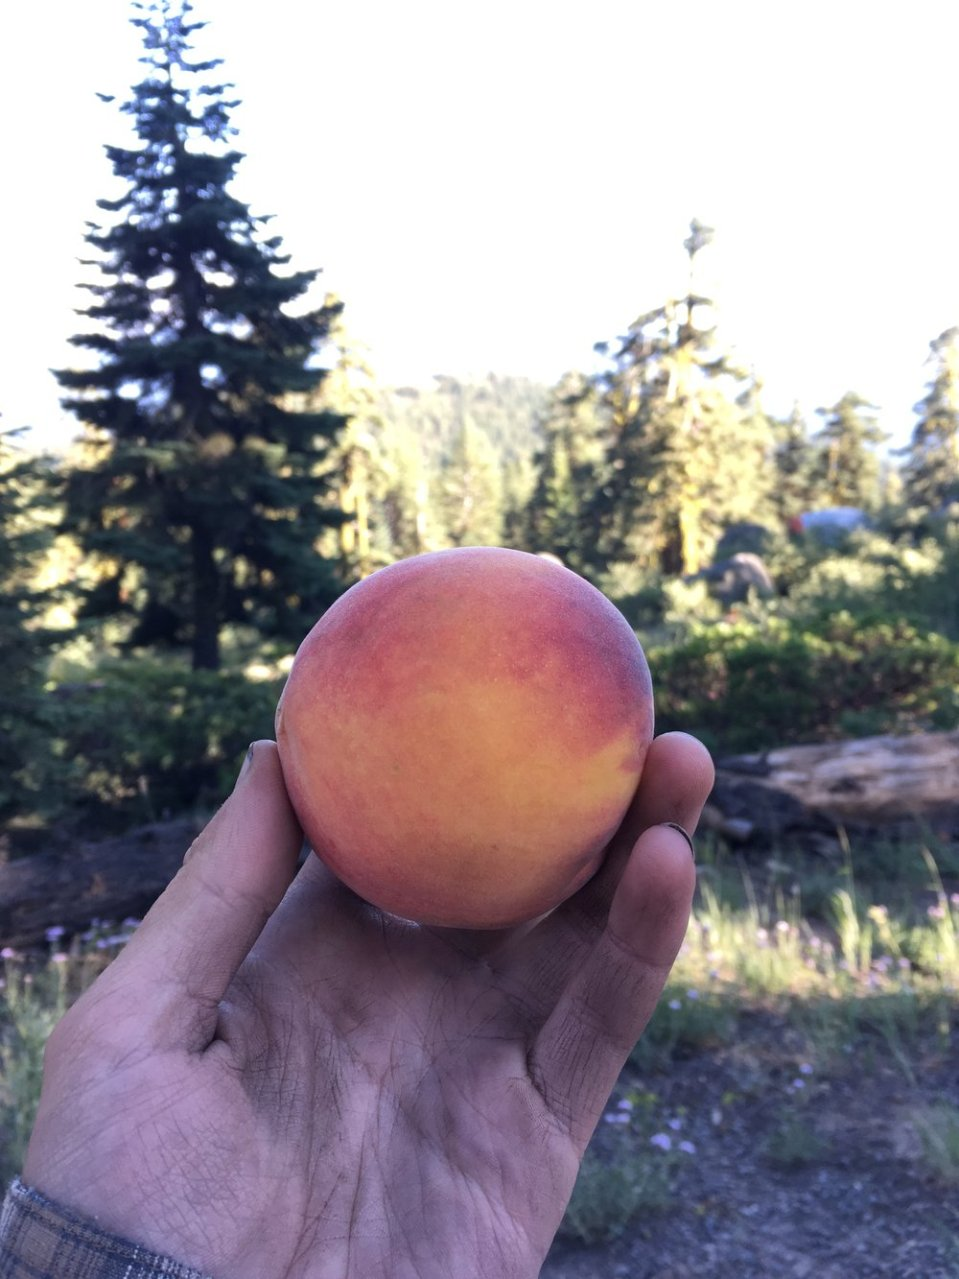 Clean peach in dirty hand. It's a work of art. That's it's name.